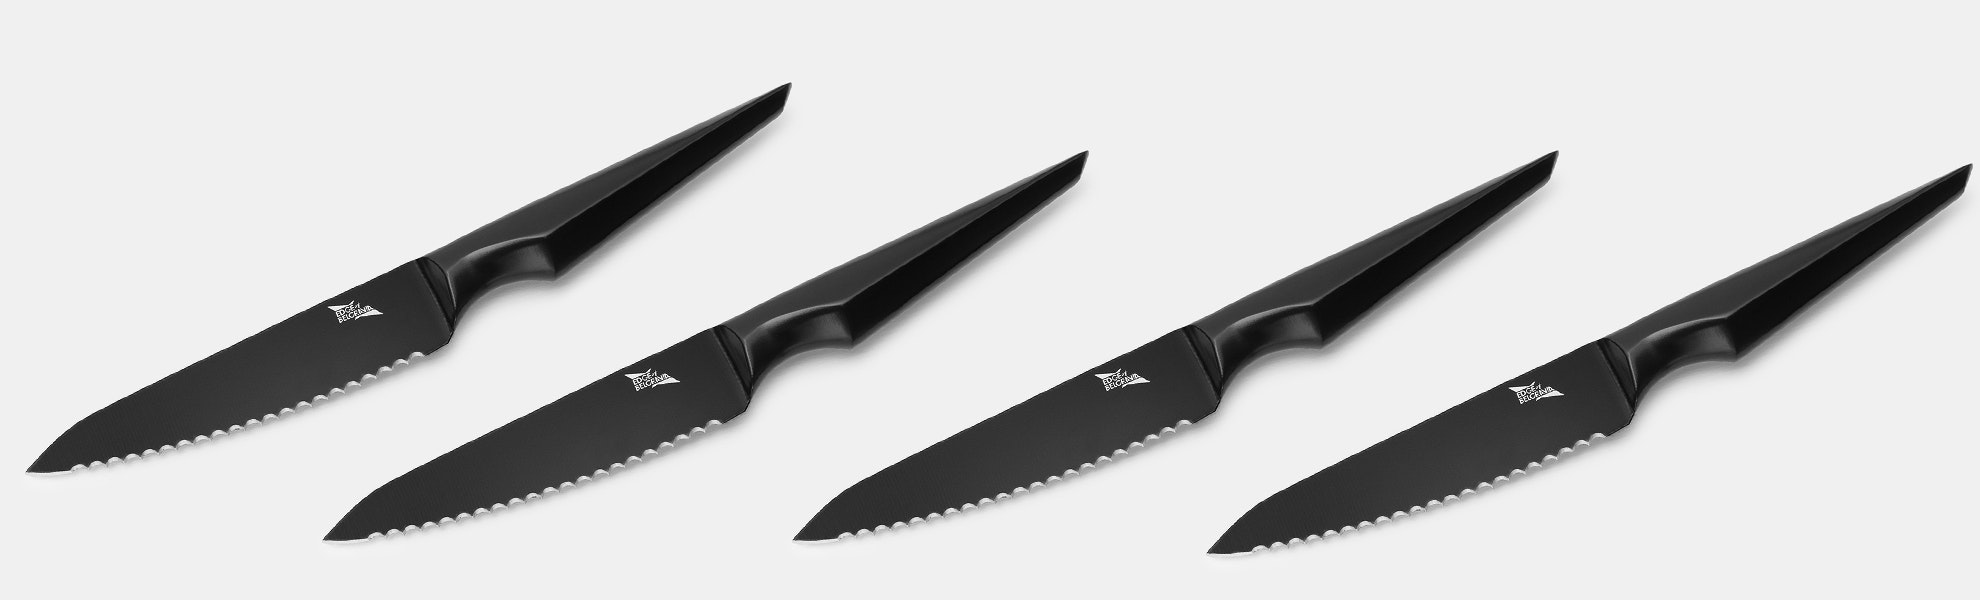 Edge of Belgravia Galatine Knife Sets